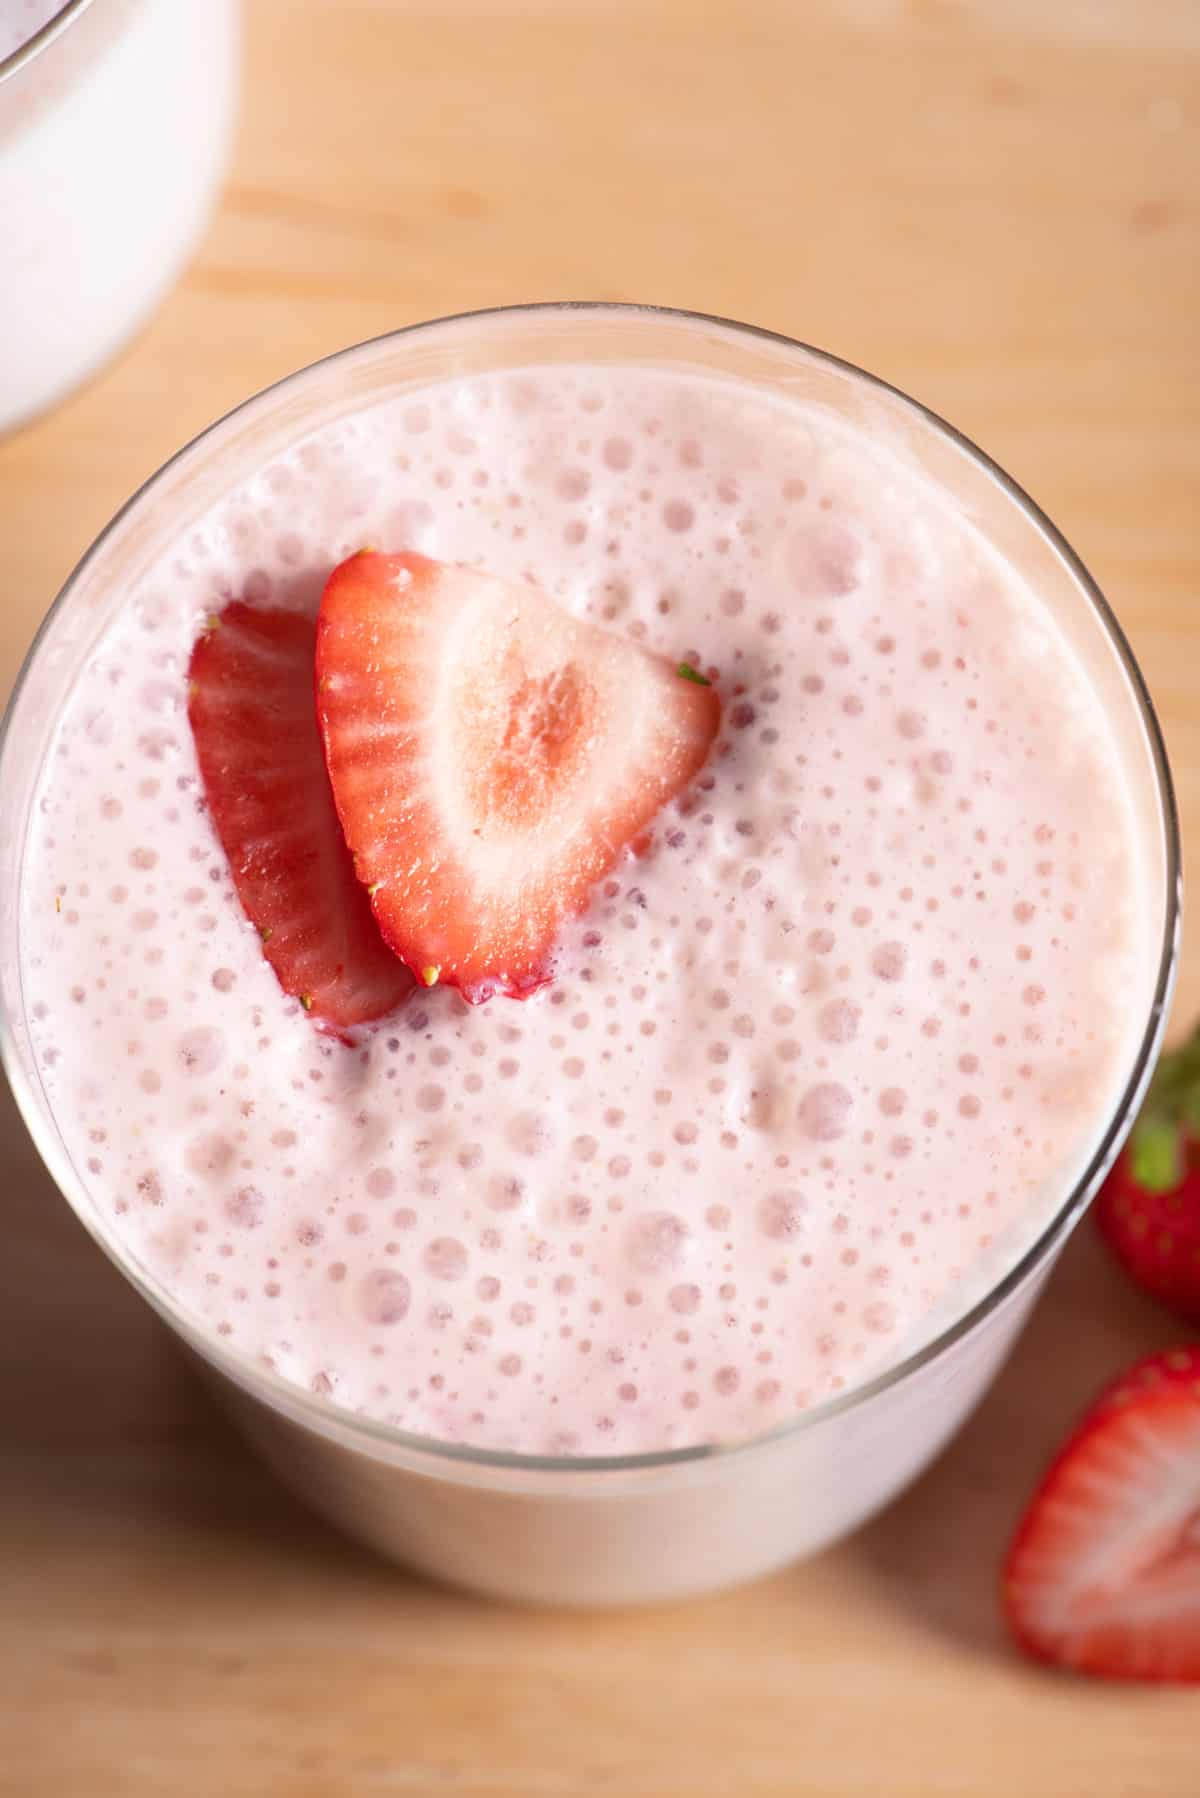 Top down view of strawberry protein smoothie with slices of strawberries on top